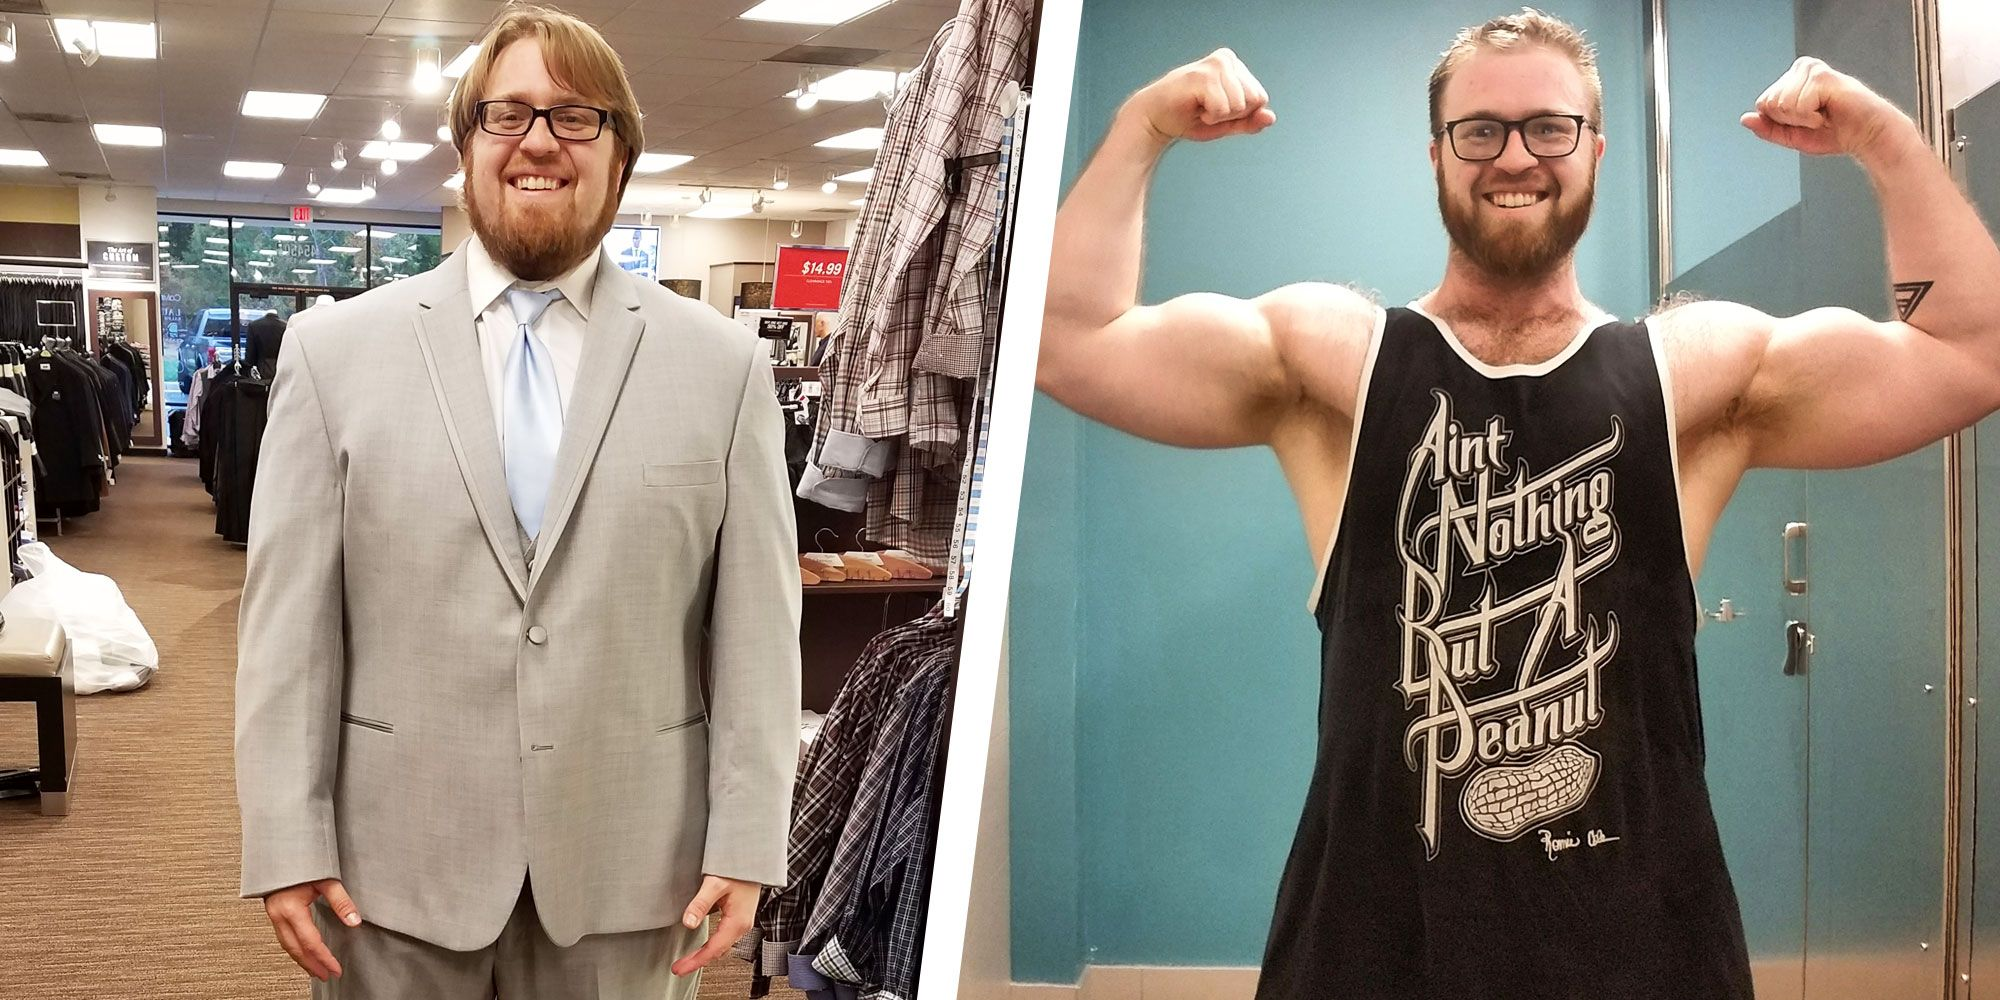 This Guy Changed His Diet and Workout Routine and Lost 50 Pounds in 10 Months